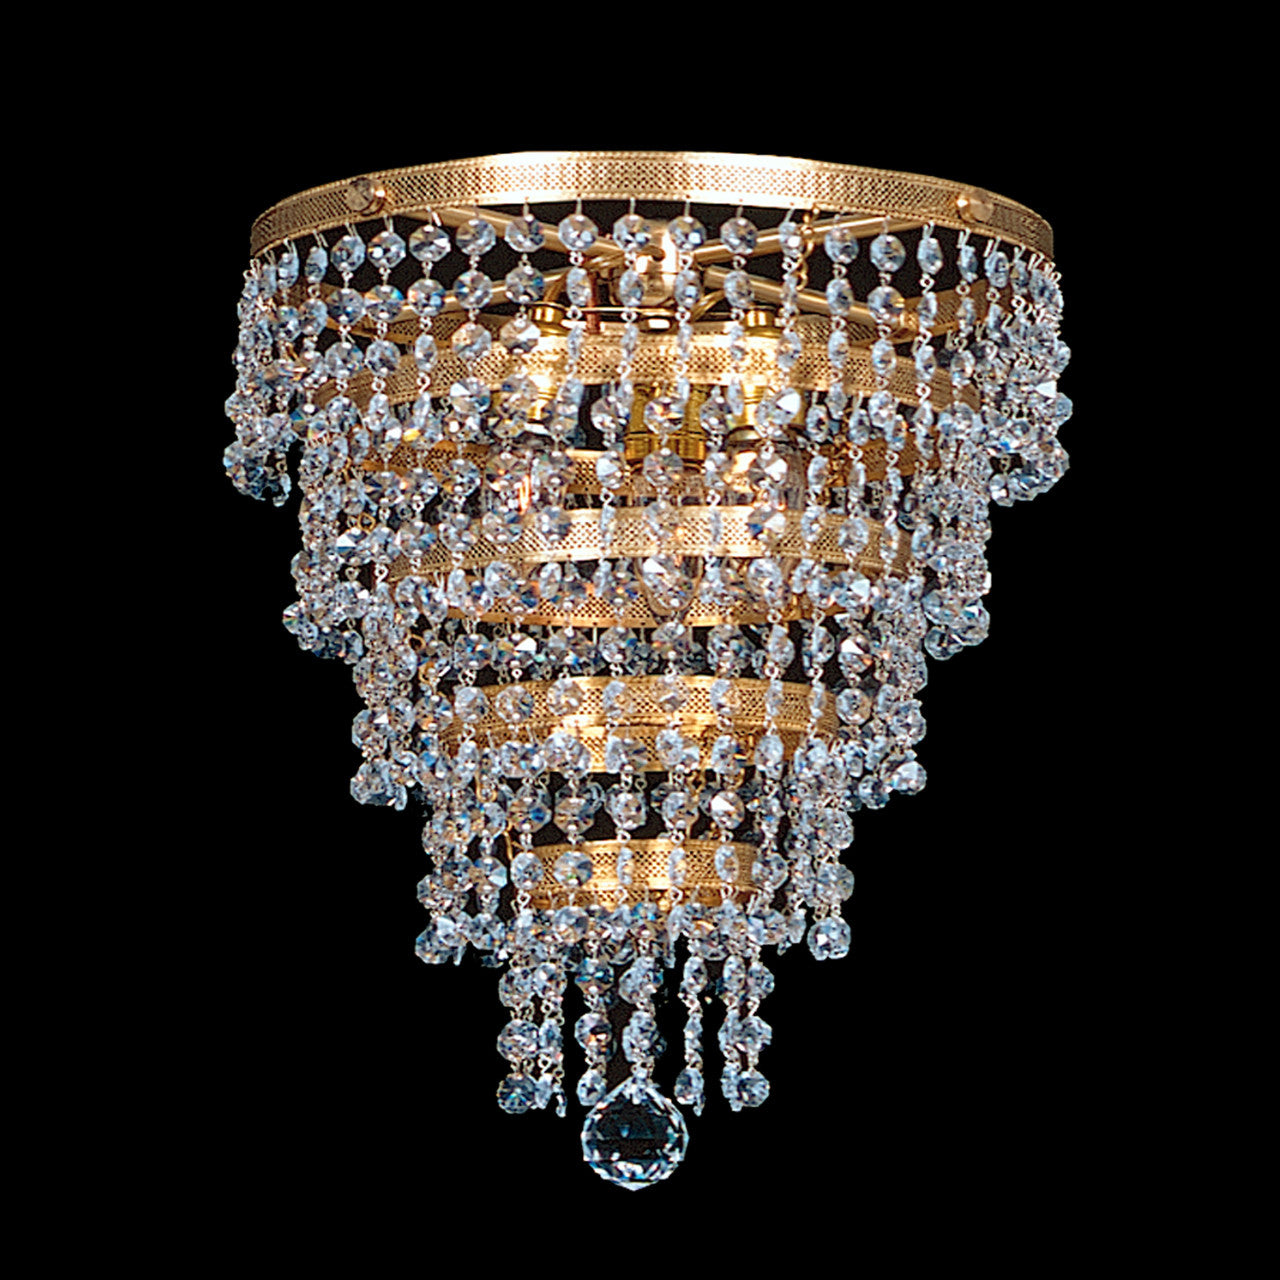 chandeliers bronze chandelier wiring comp free shippin usa prism vintage crystal rare murano swarovski pin